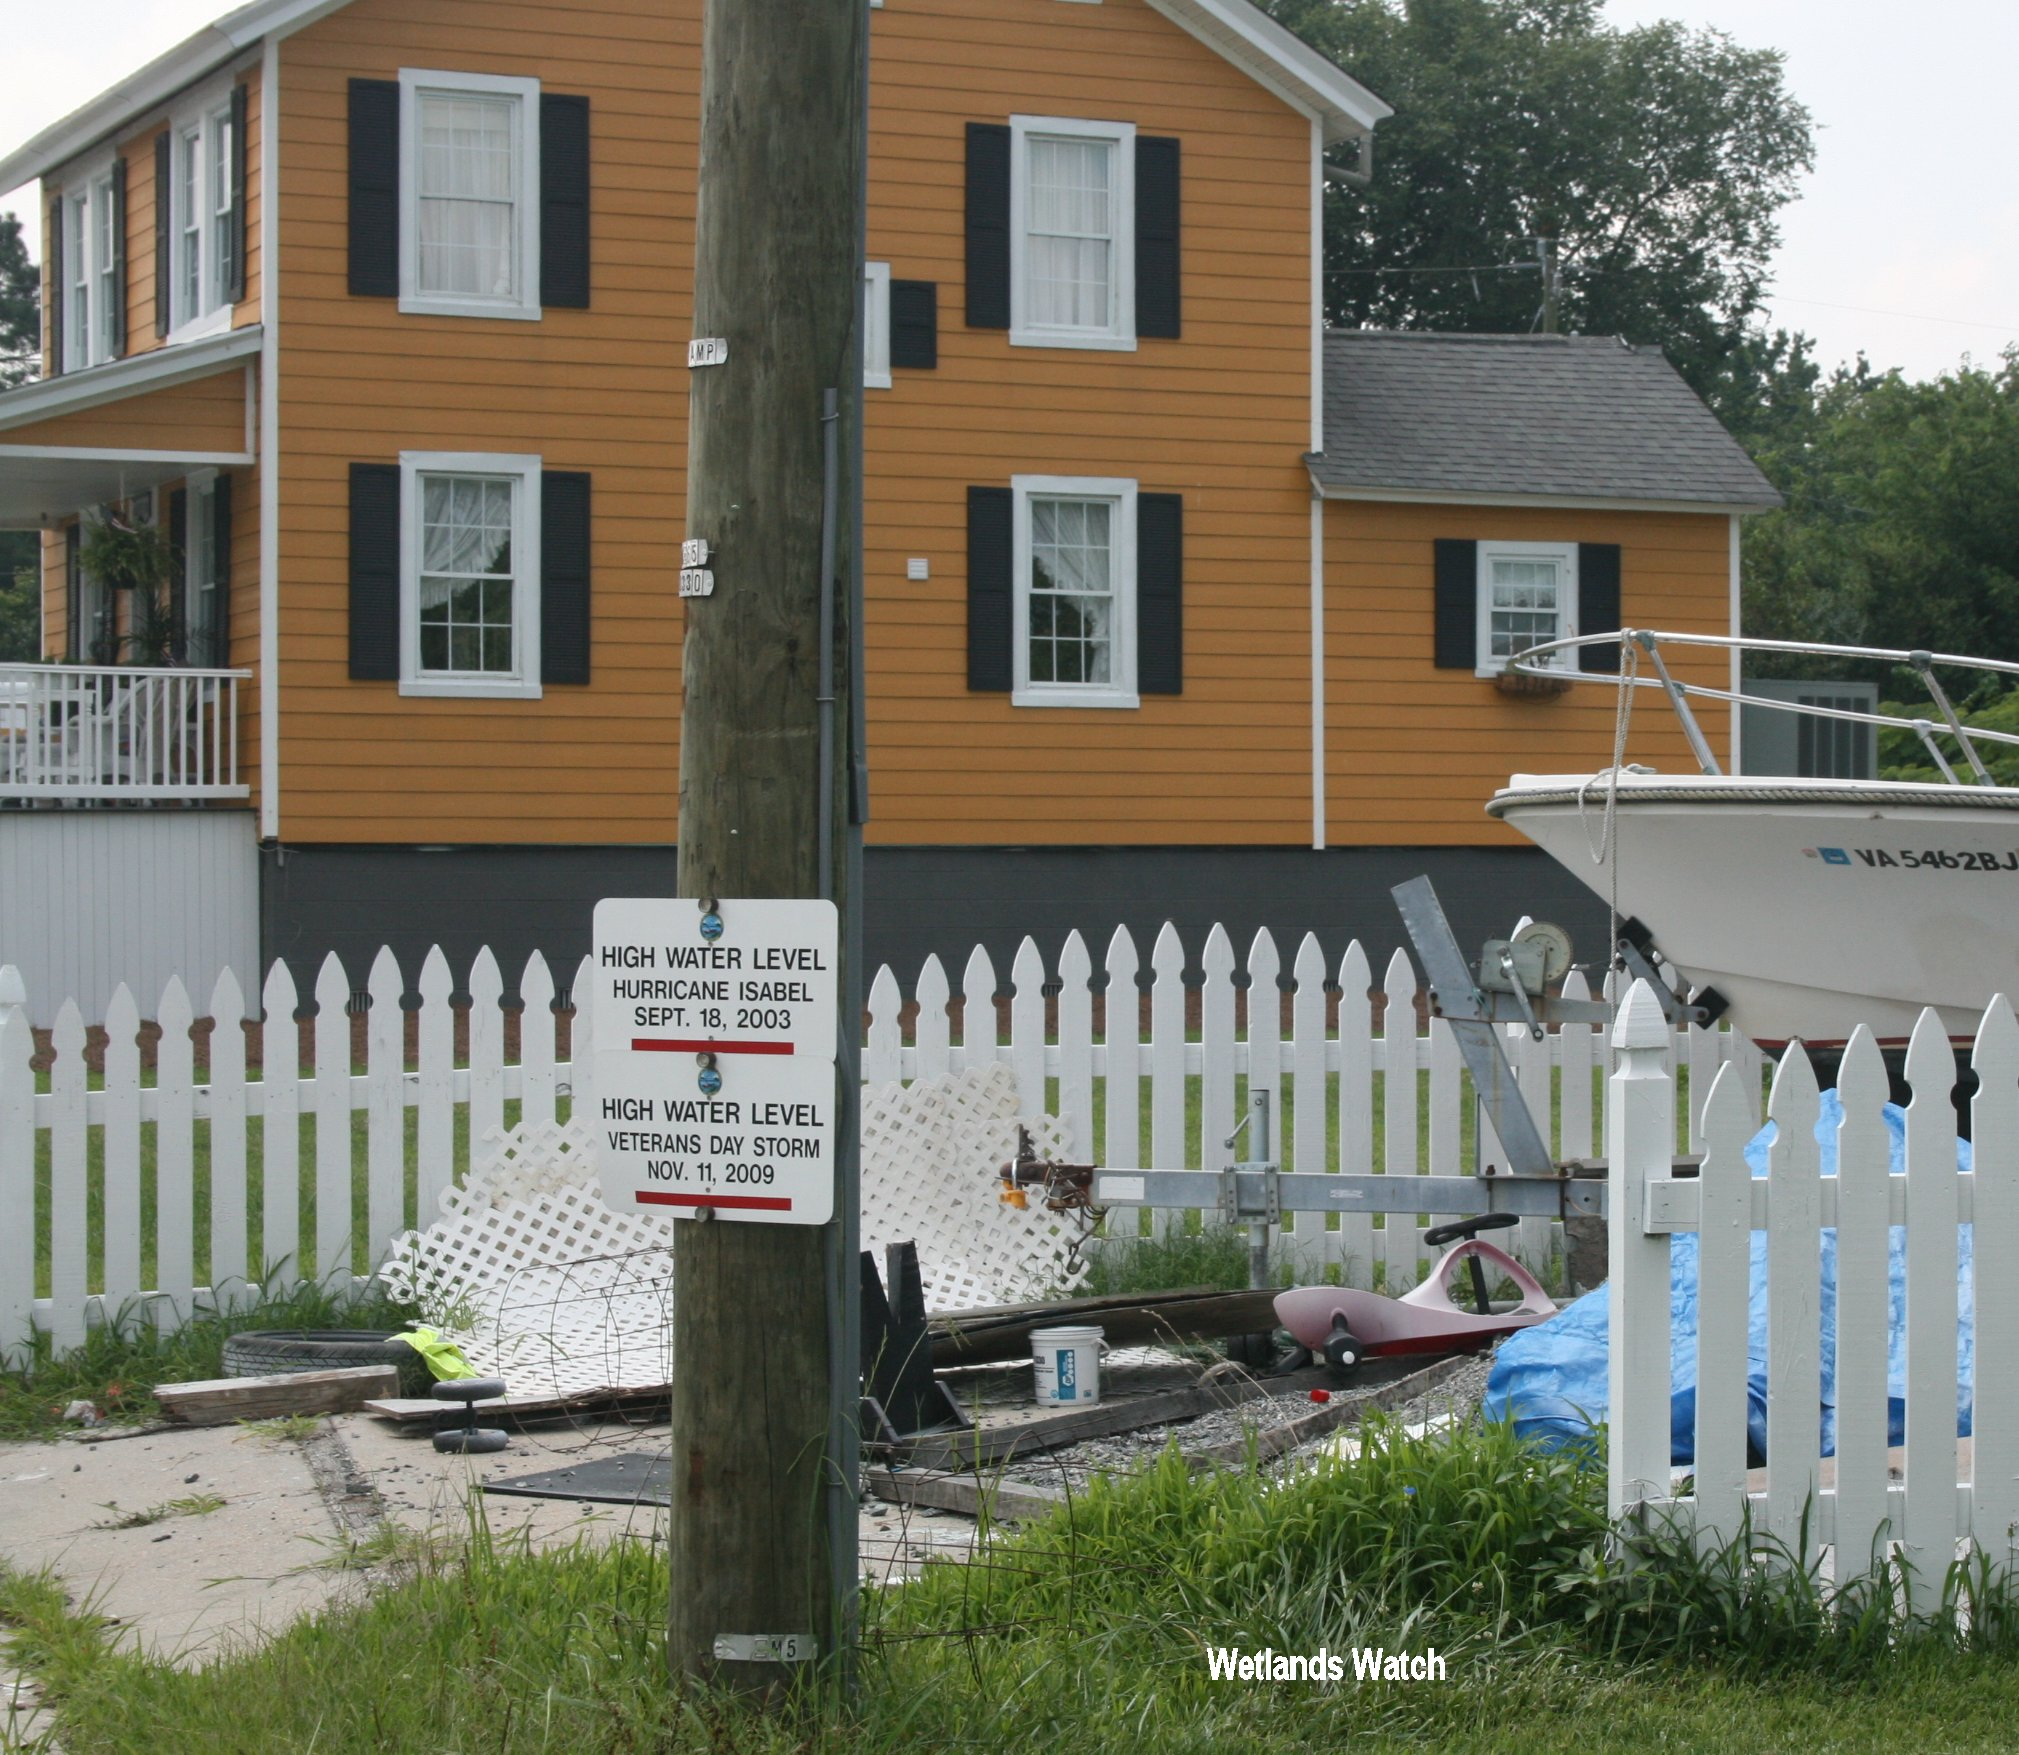 Flood Levels Recorded and House Elevated Above Them in Background